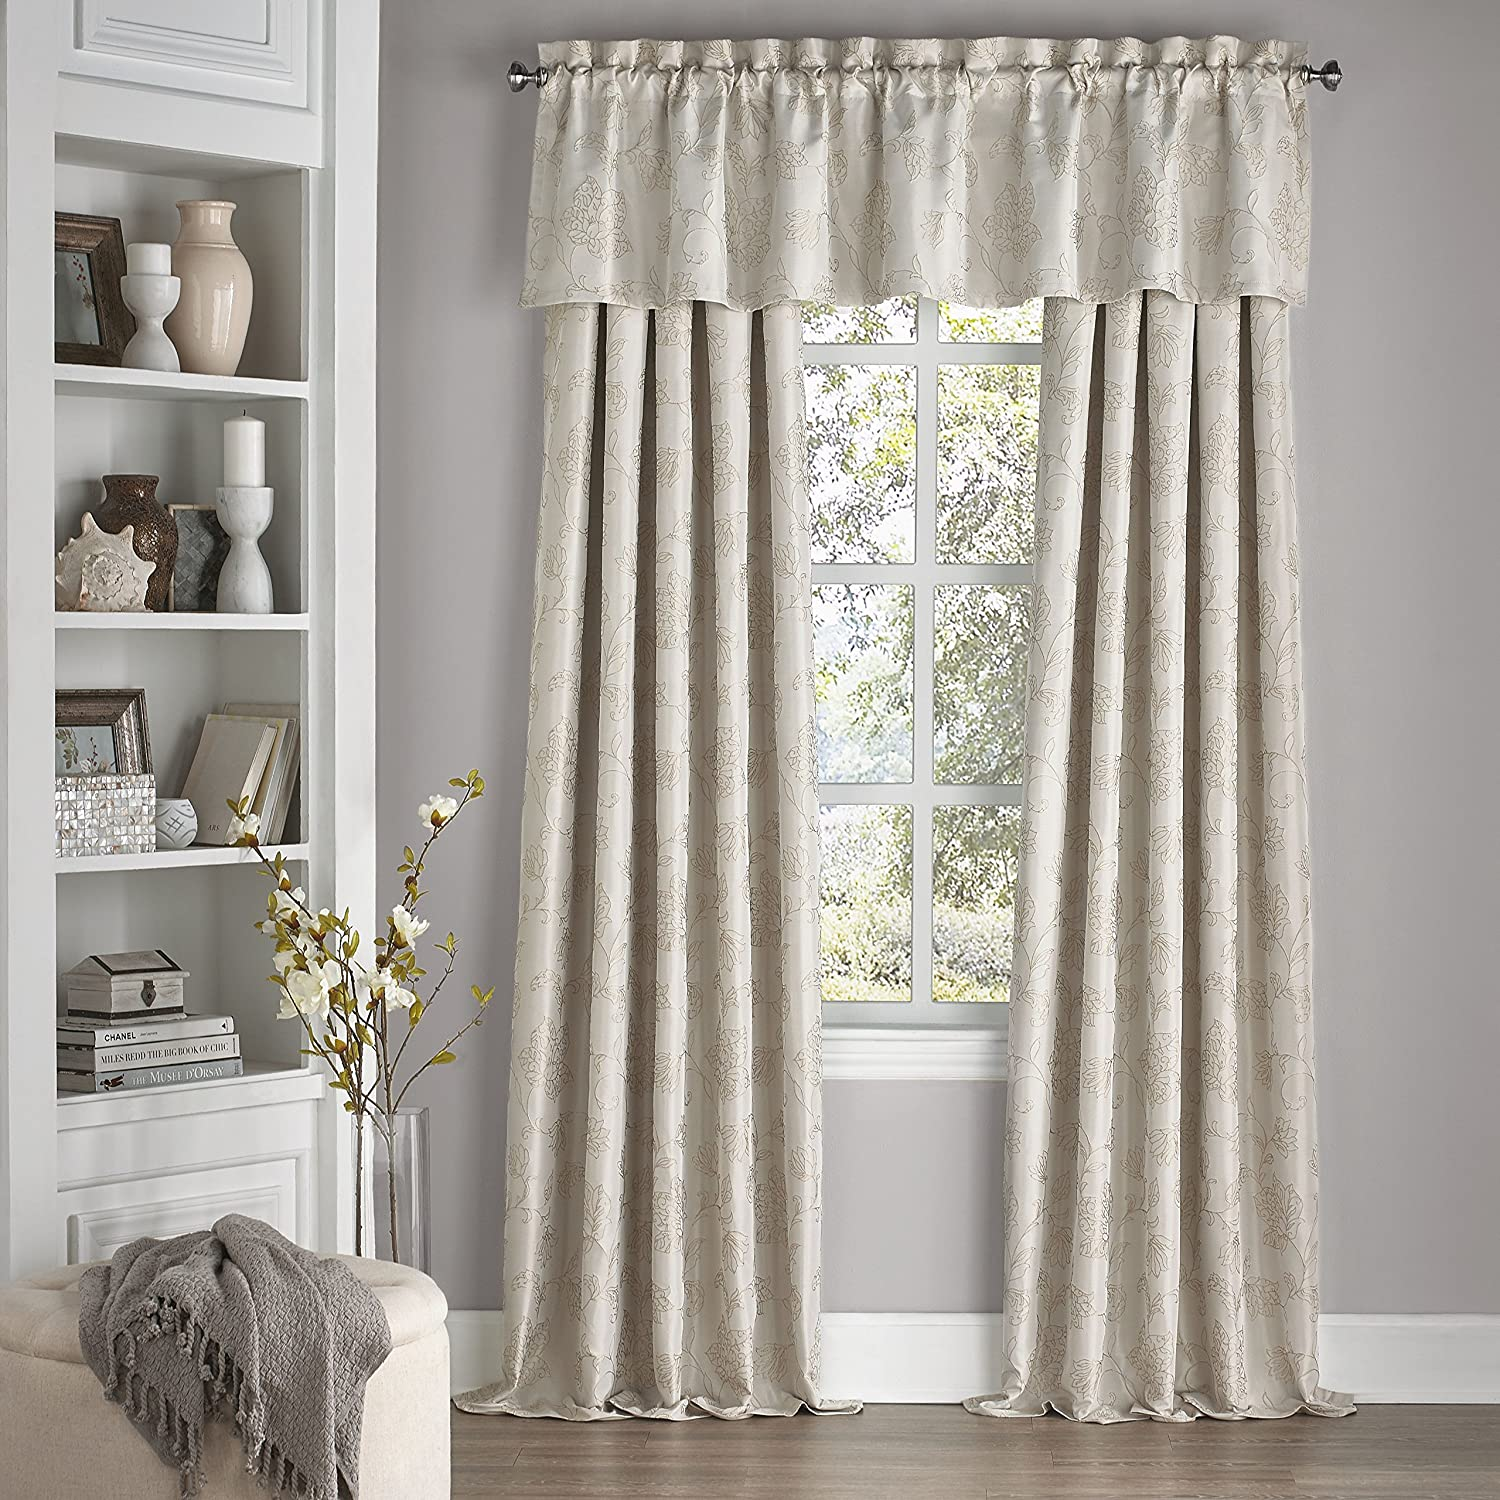 Eclipse 15654052018IVY Mallory 52-Inch by 18-Inch Blackout Floral Valance Ivory Ellery Homestyles